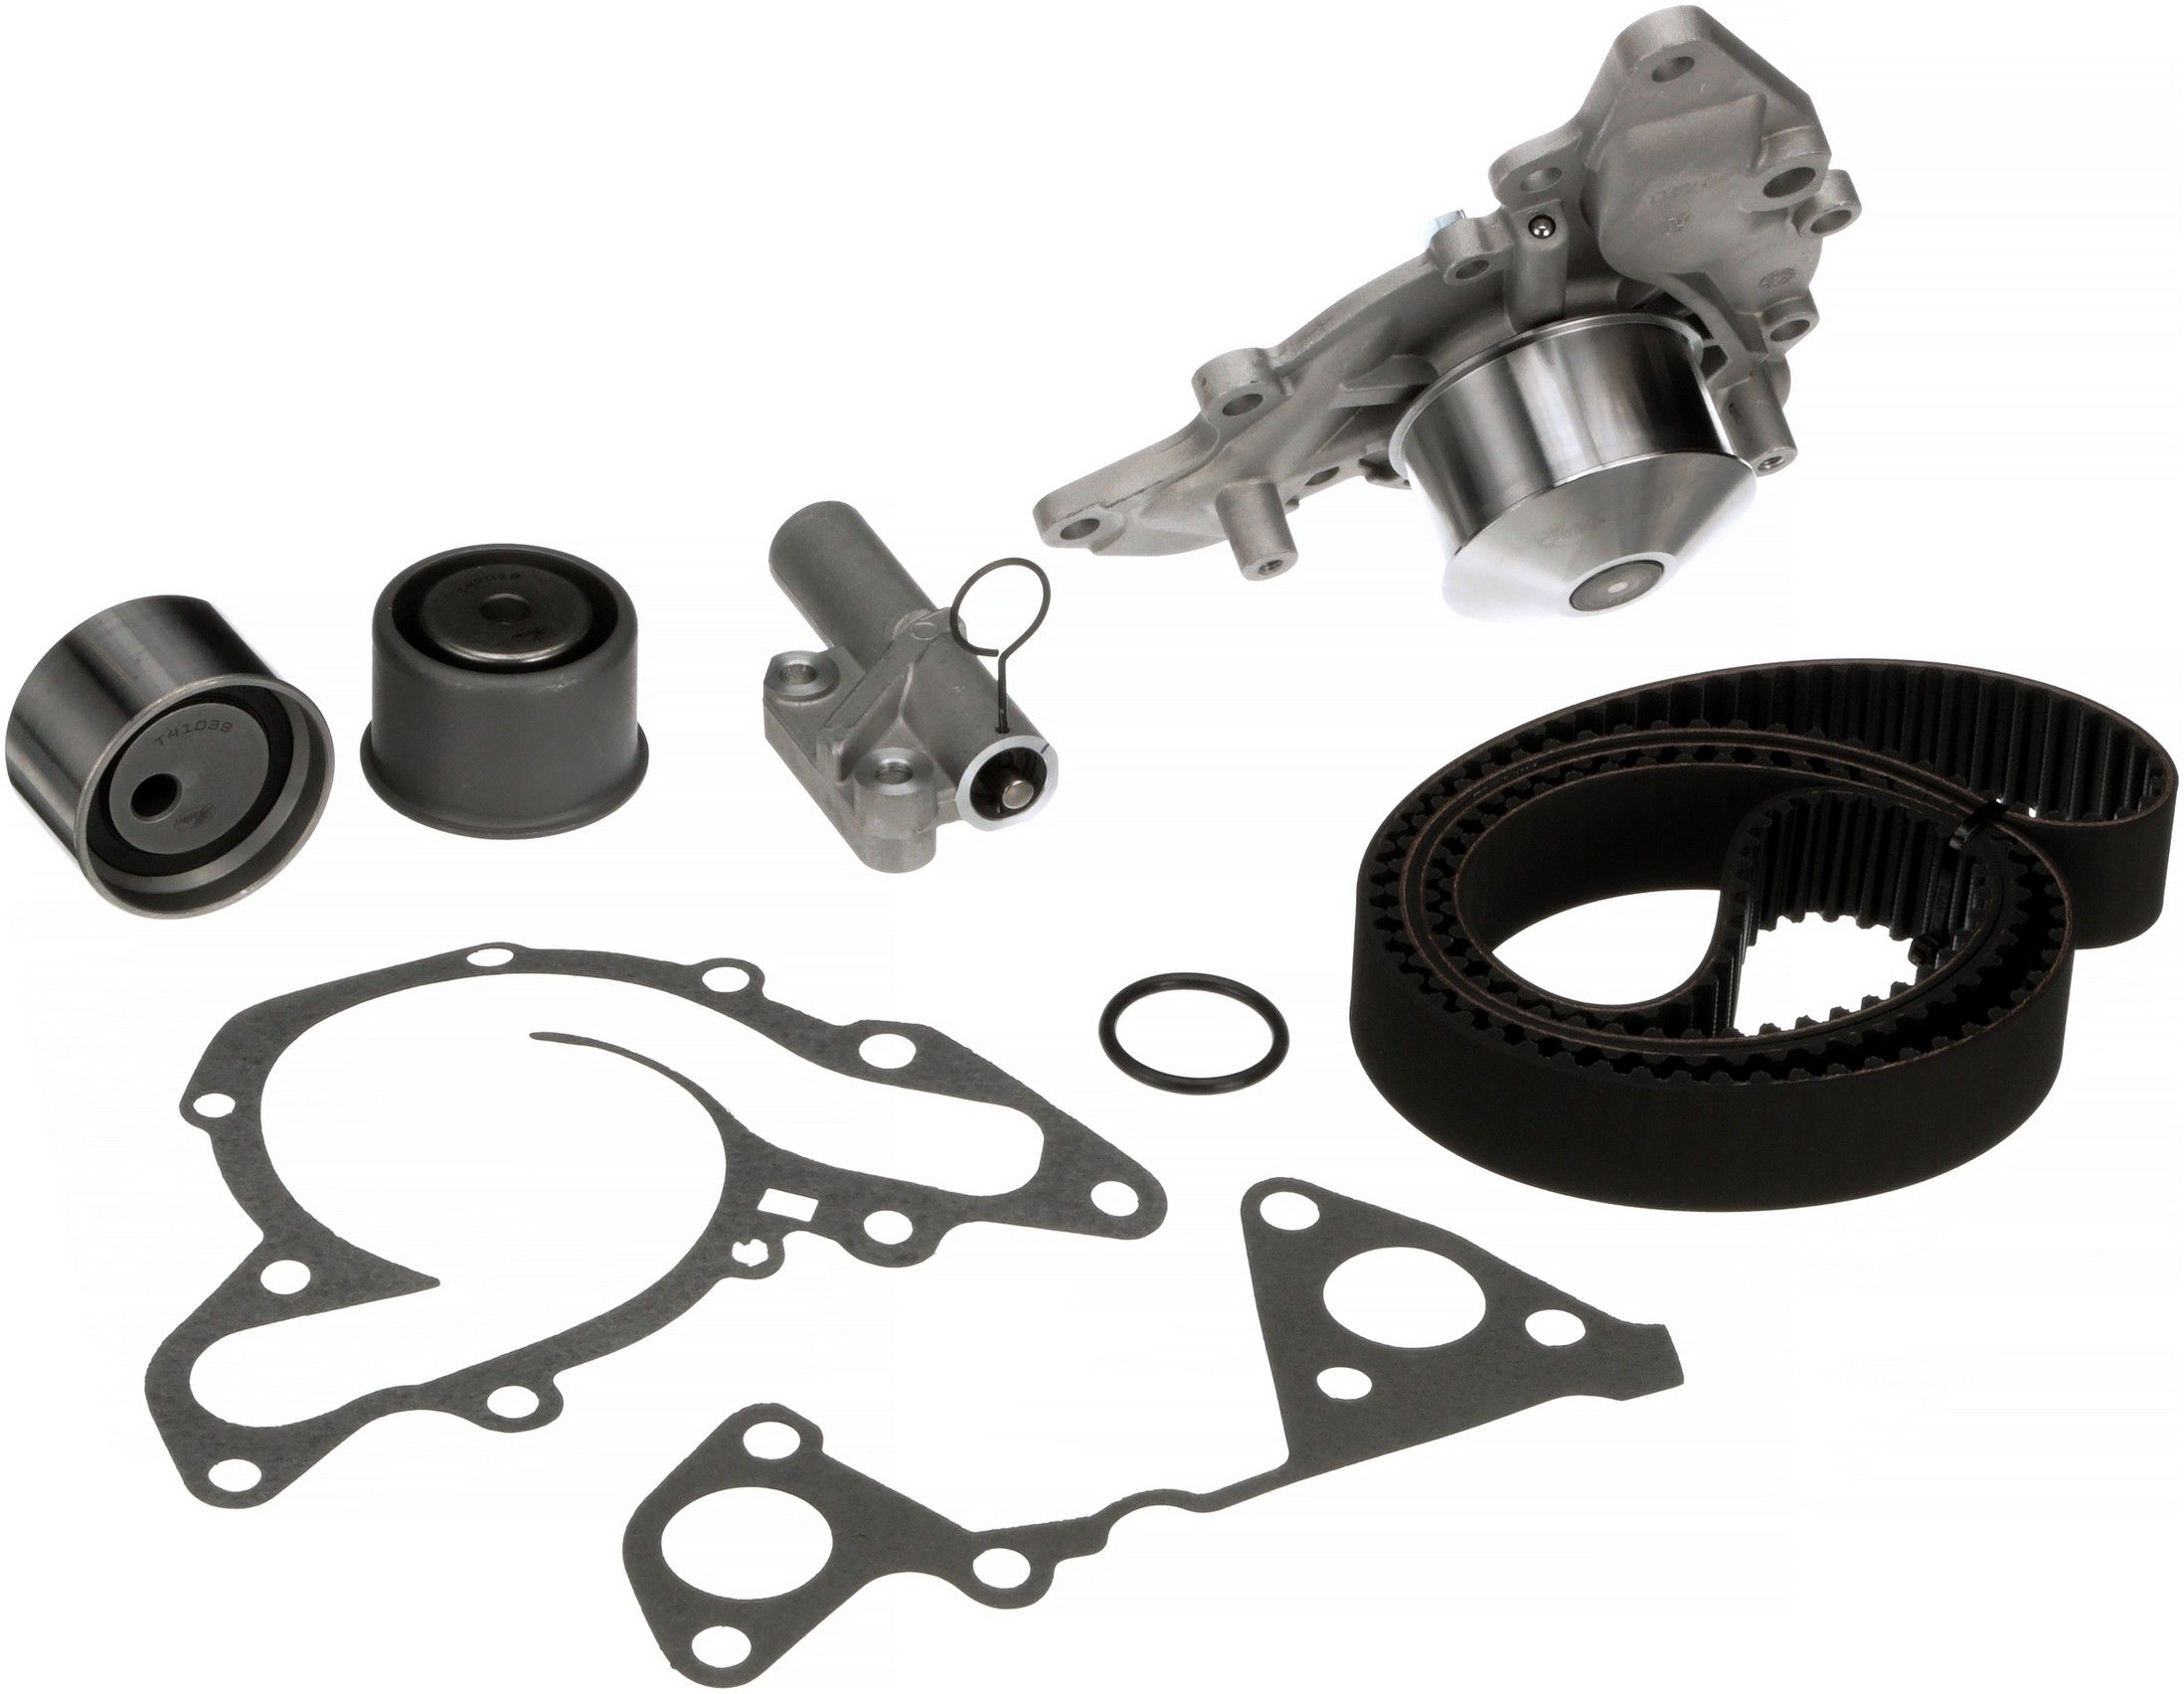 Mitsubishi Montero Sport Engine Timing Belt Kit With Water Pump 2001 2004 6 Cyl 35l Gates Tckwp287b W O Housing Interference Application